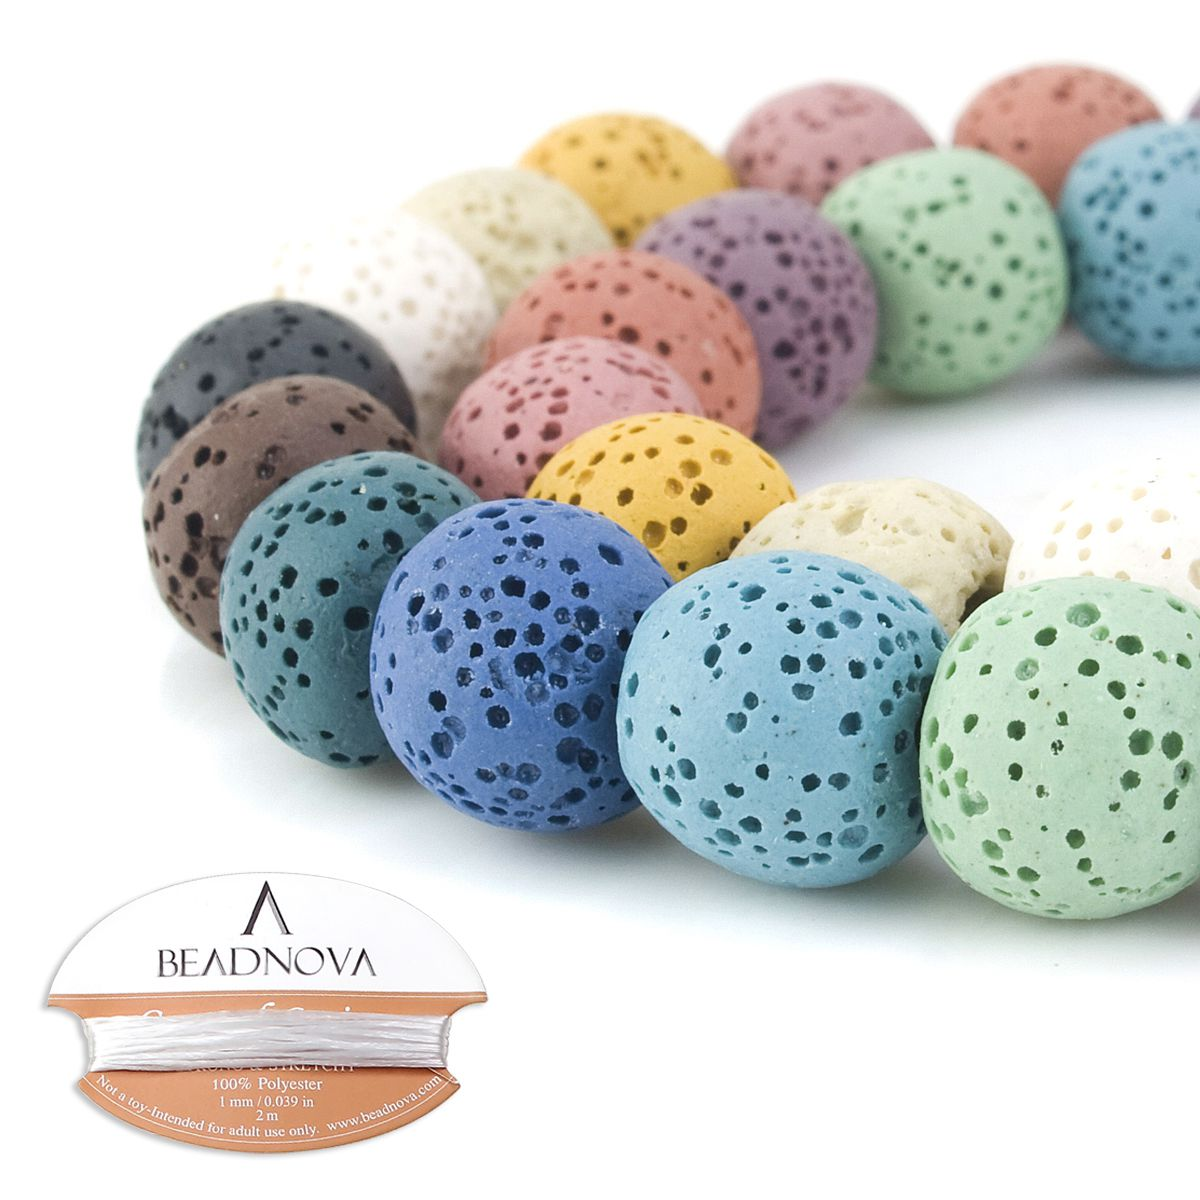 Approxi 63pcs per Strand BORUO Natural 6mm Brown Color Lava Rock Stone Semi Precious Gemstone Round Loose Beads Energy Stone Healing Power for Jewelry Making